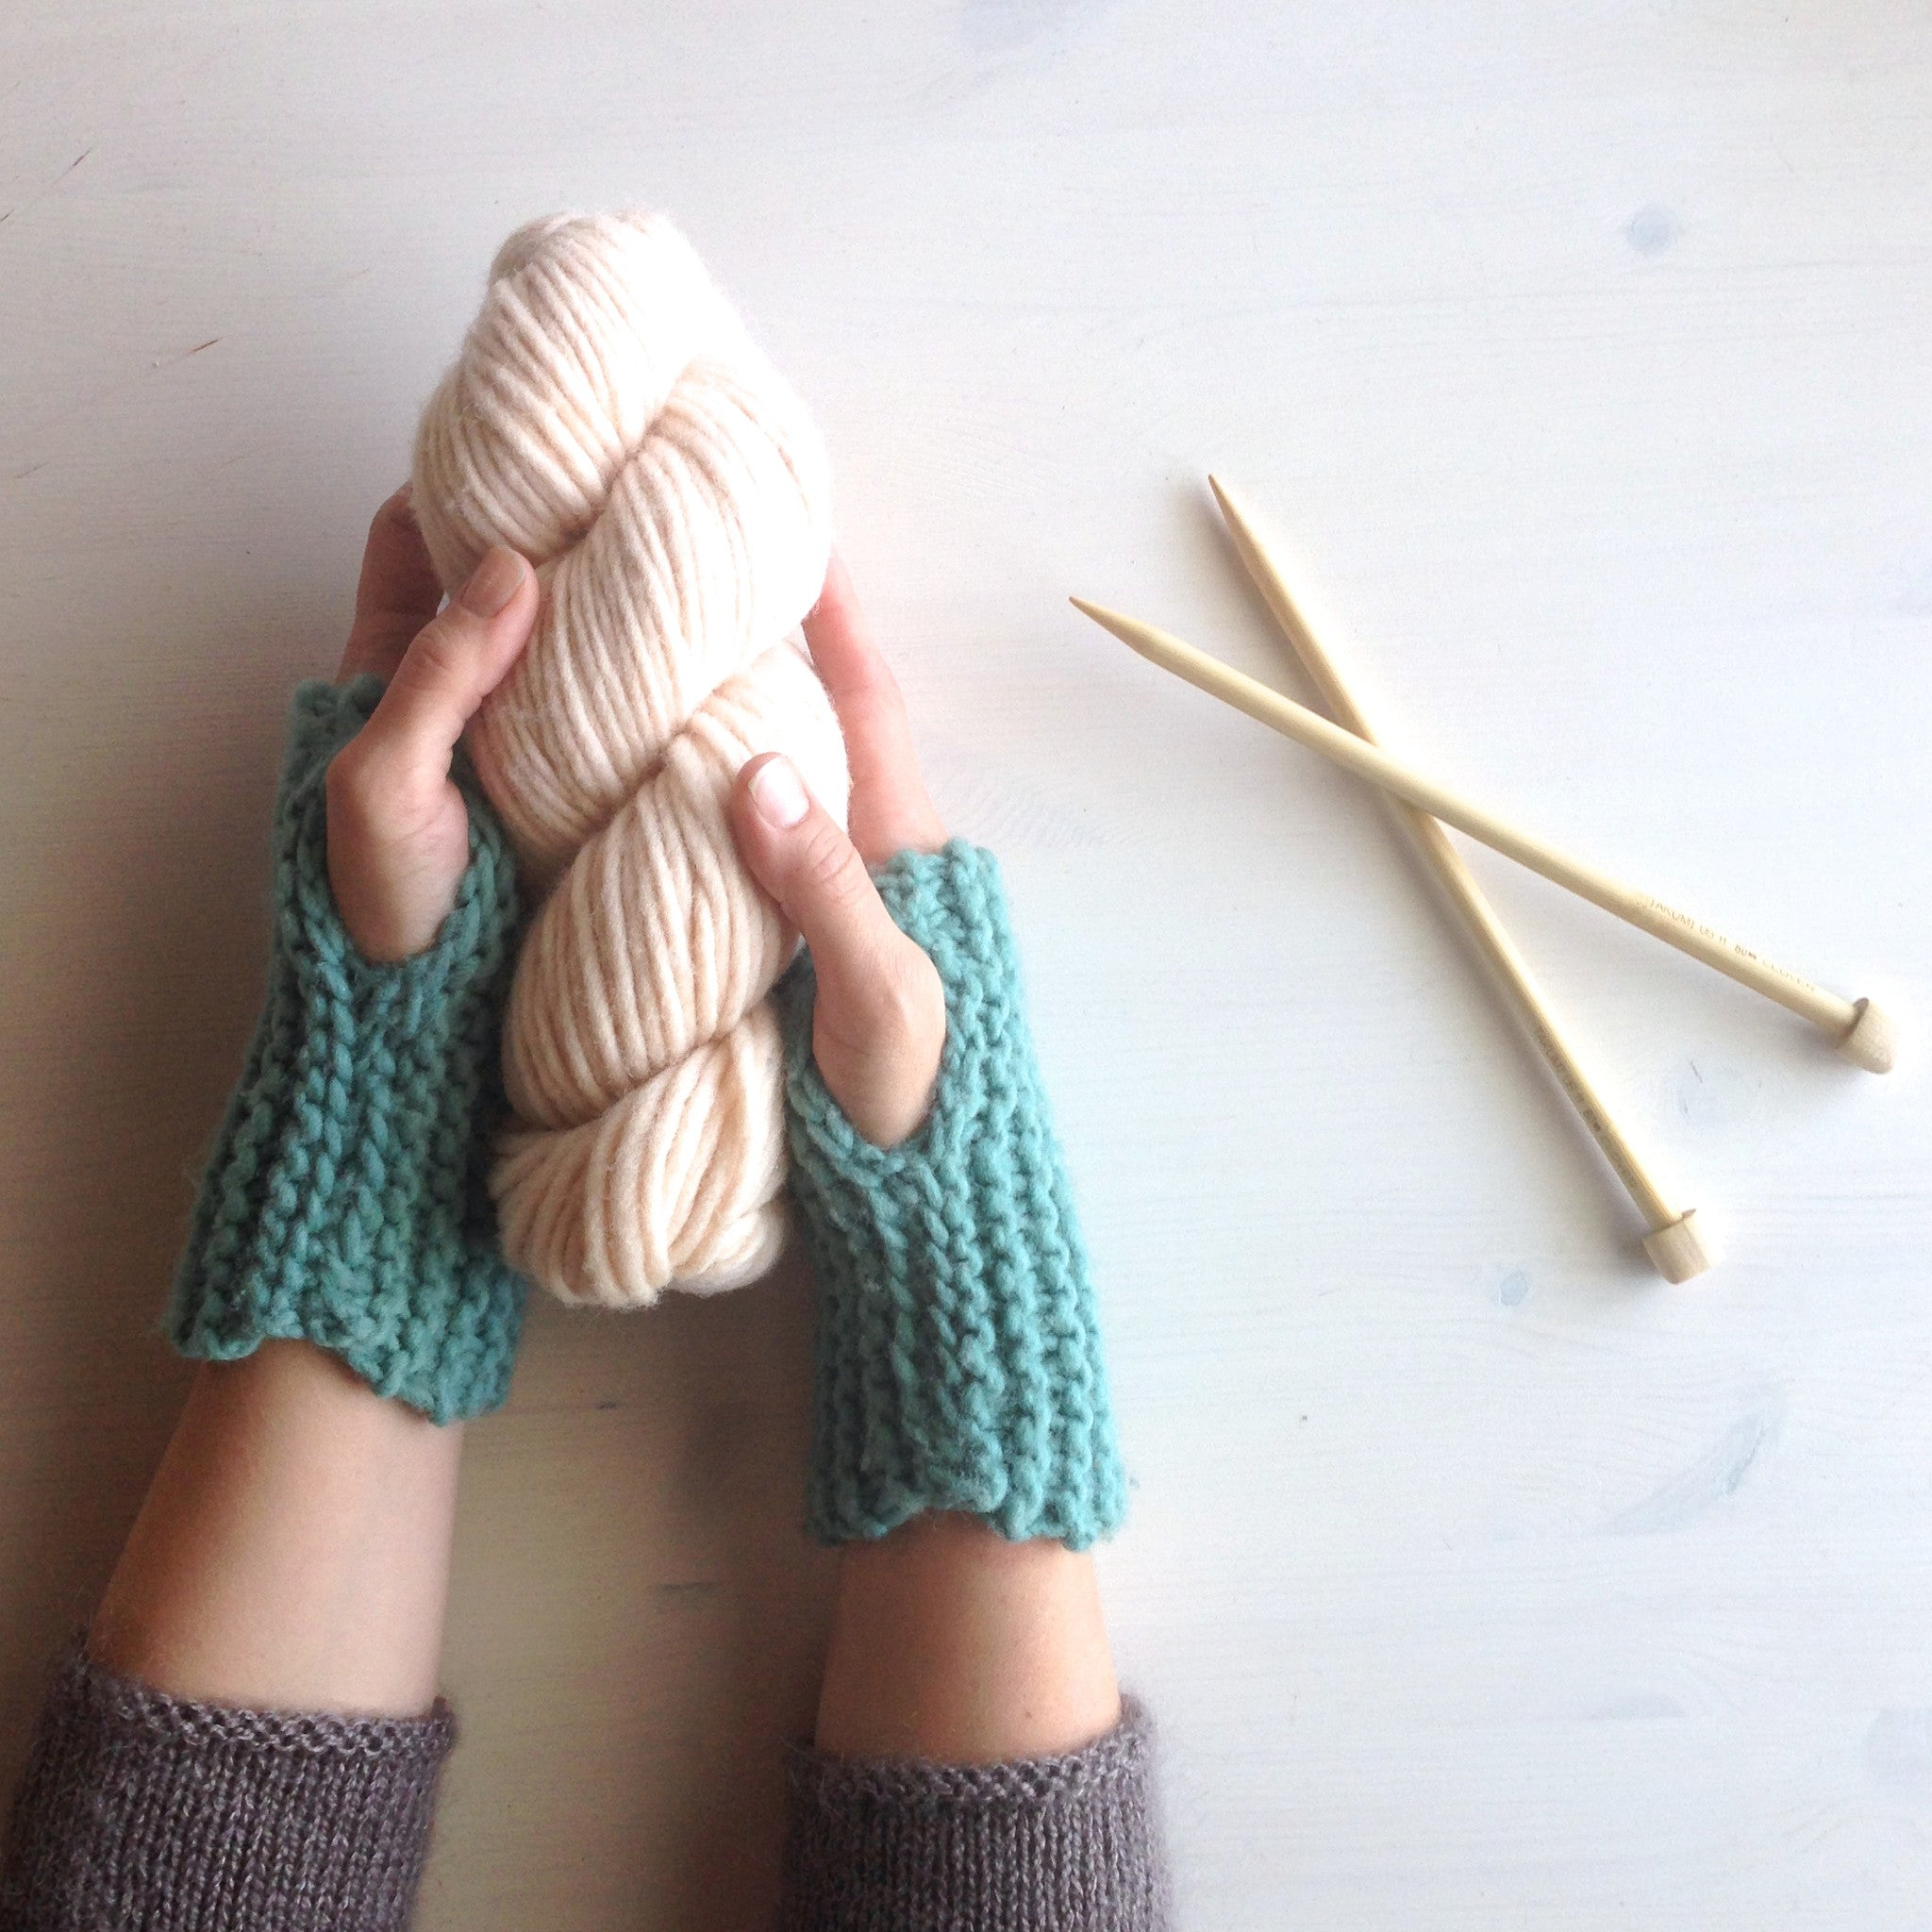 Knitting 101: Mitts - July 29th